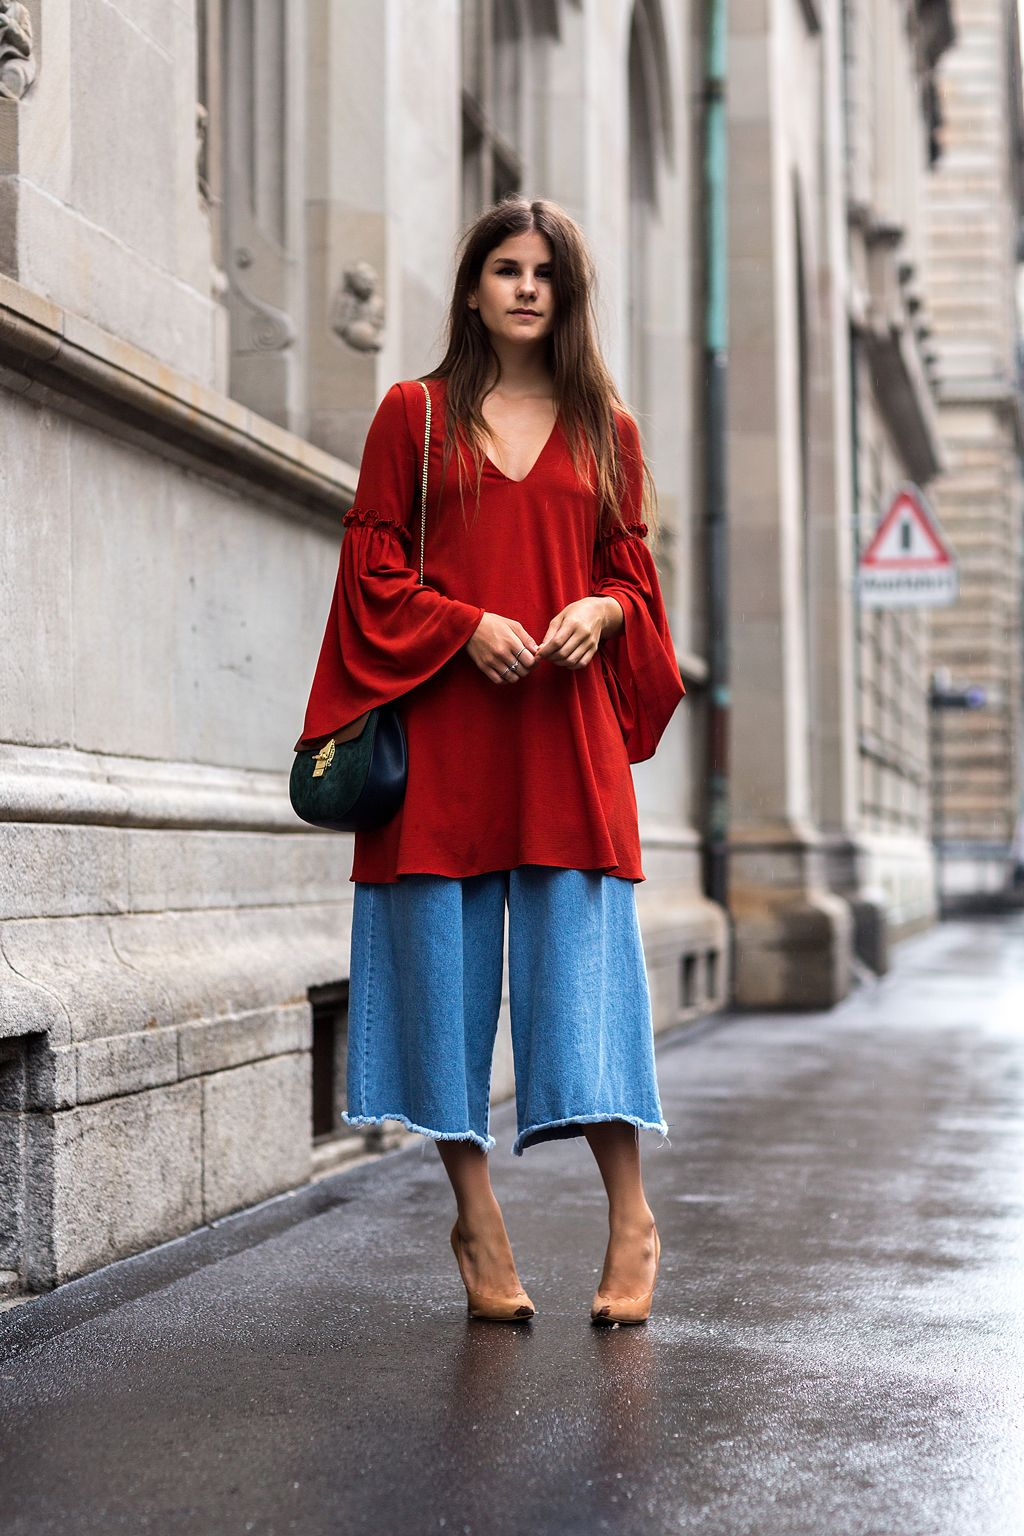 the-fashion-fraction-oversized-outfit-dress-over-culottes-chloe